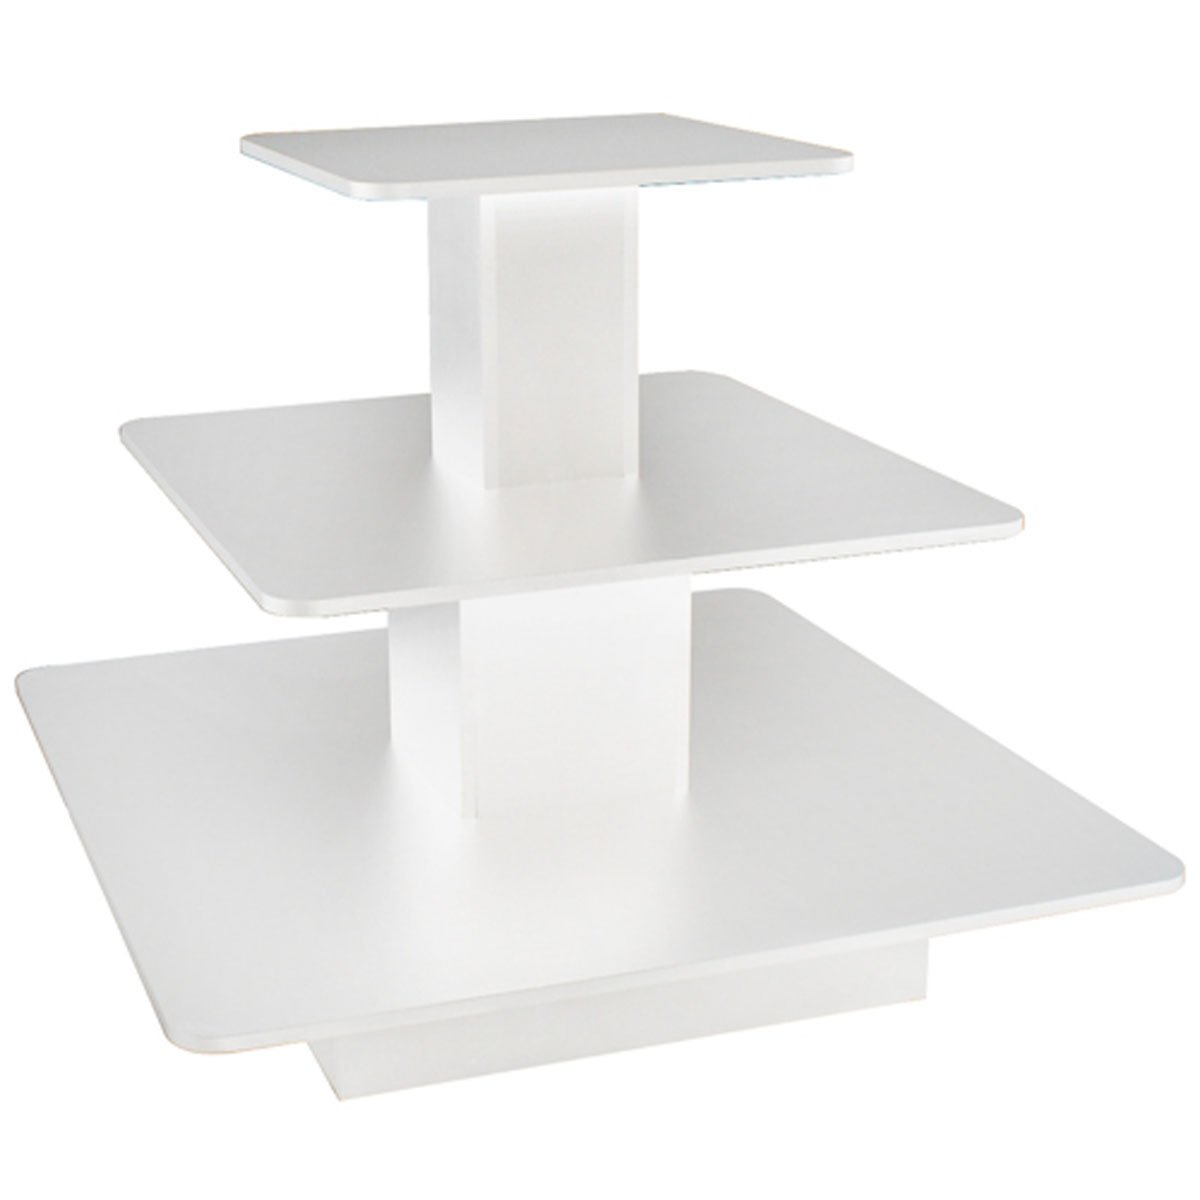 3 Tier Display Table Square Boutique Clothing Store Wood Fixture White New